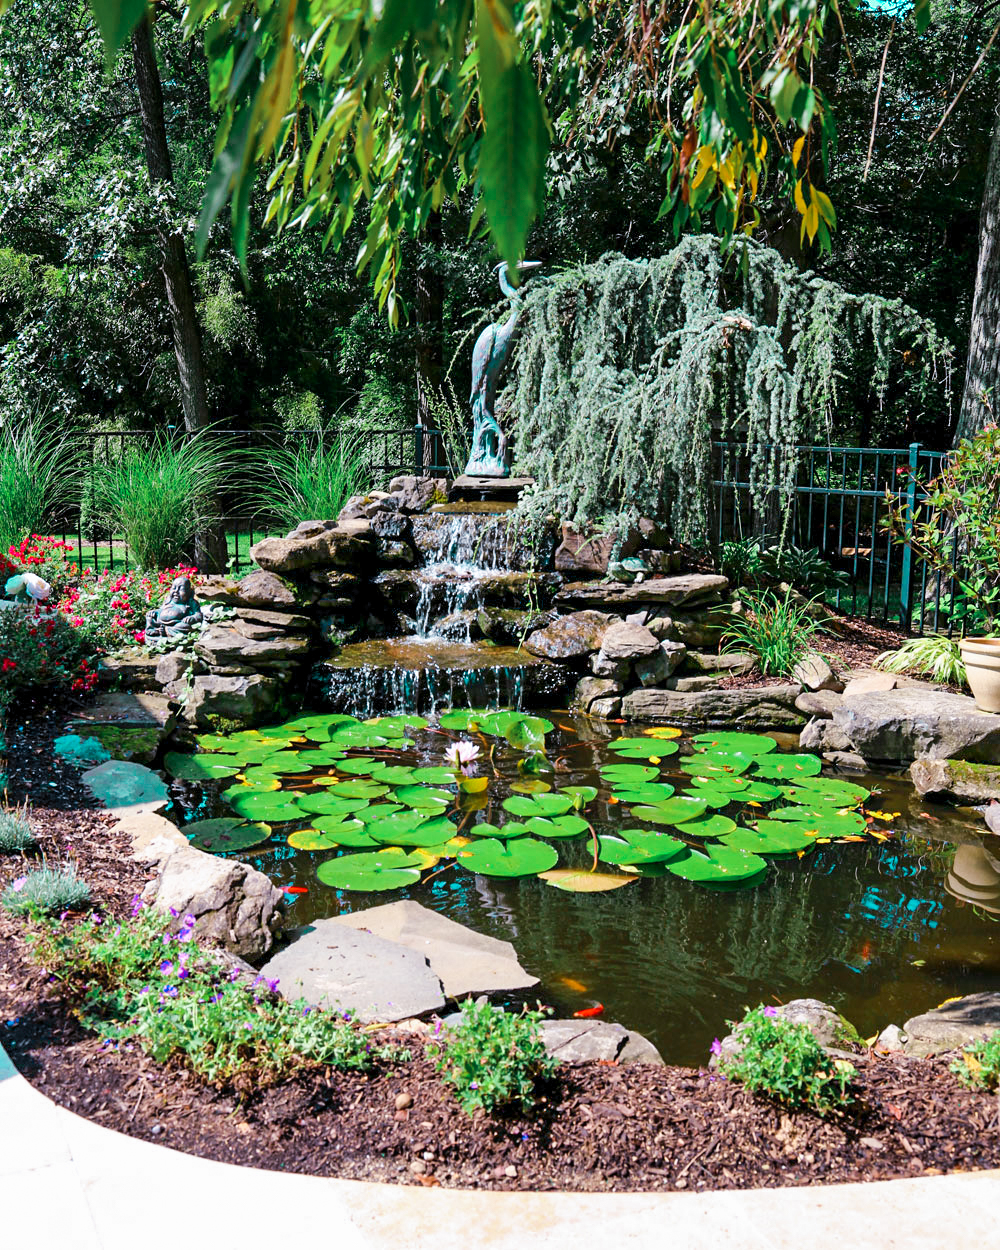 Koi fish pond with stone waterfall and bluestone walkway in Cold Spring Harbor